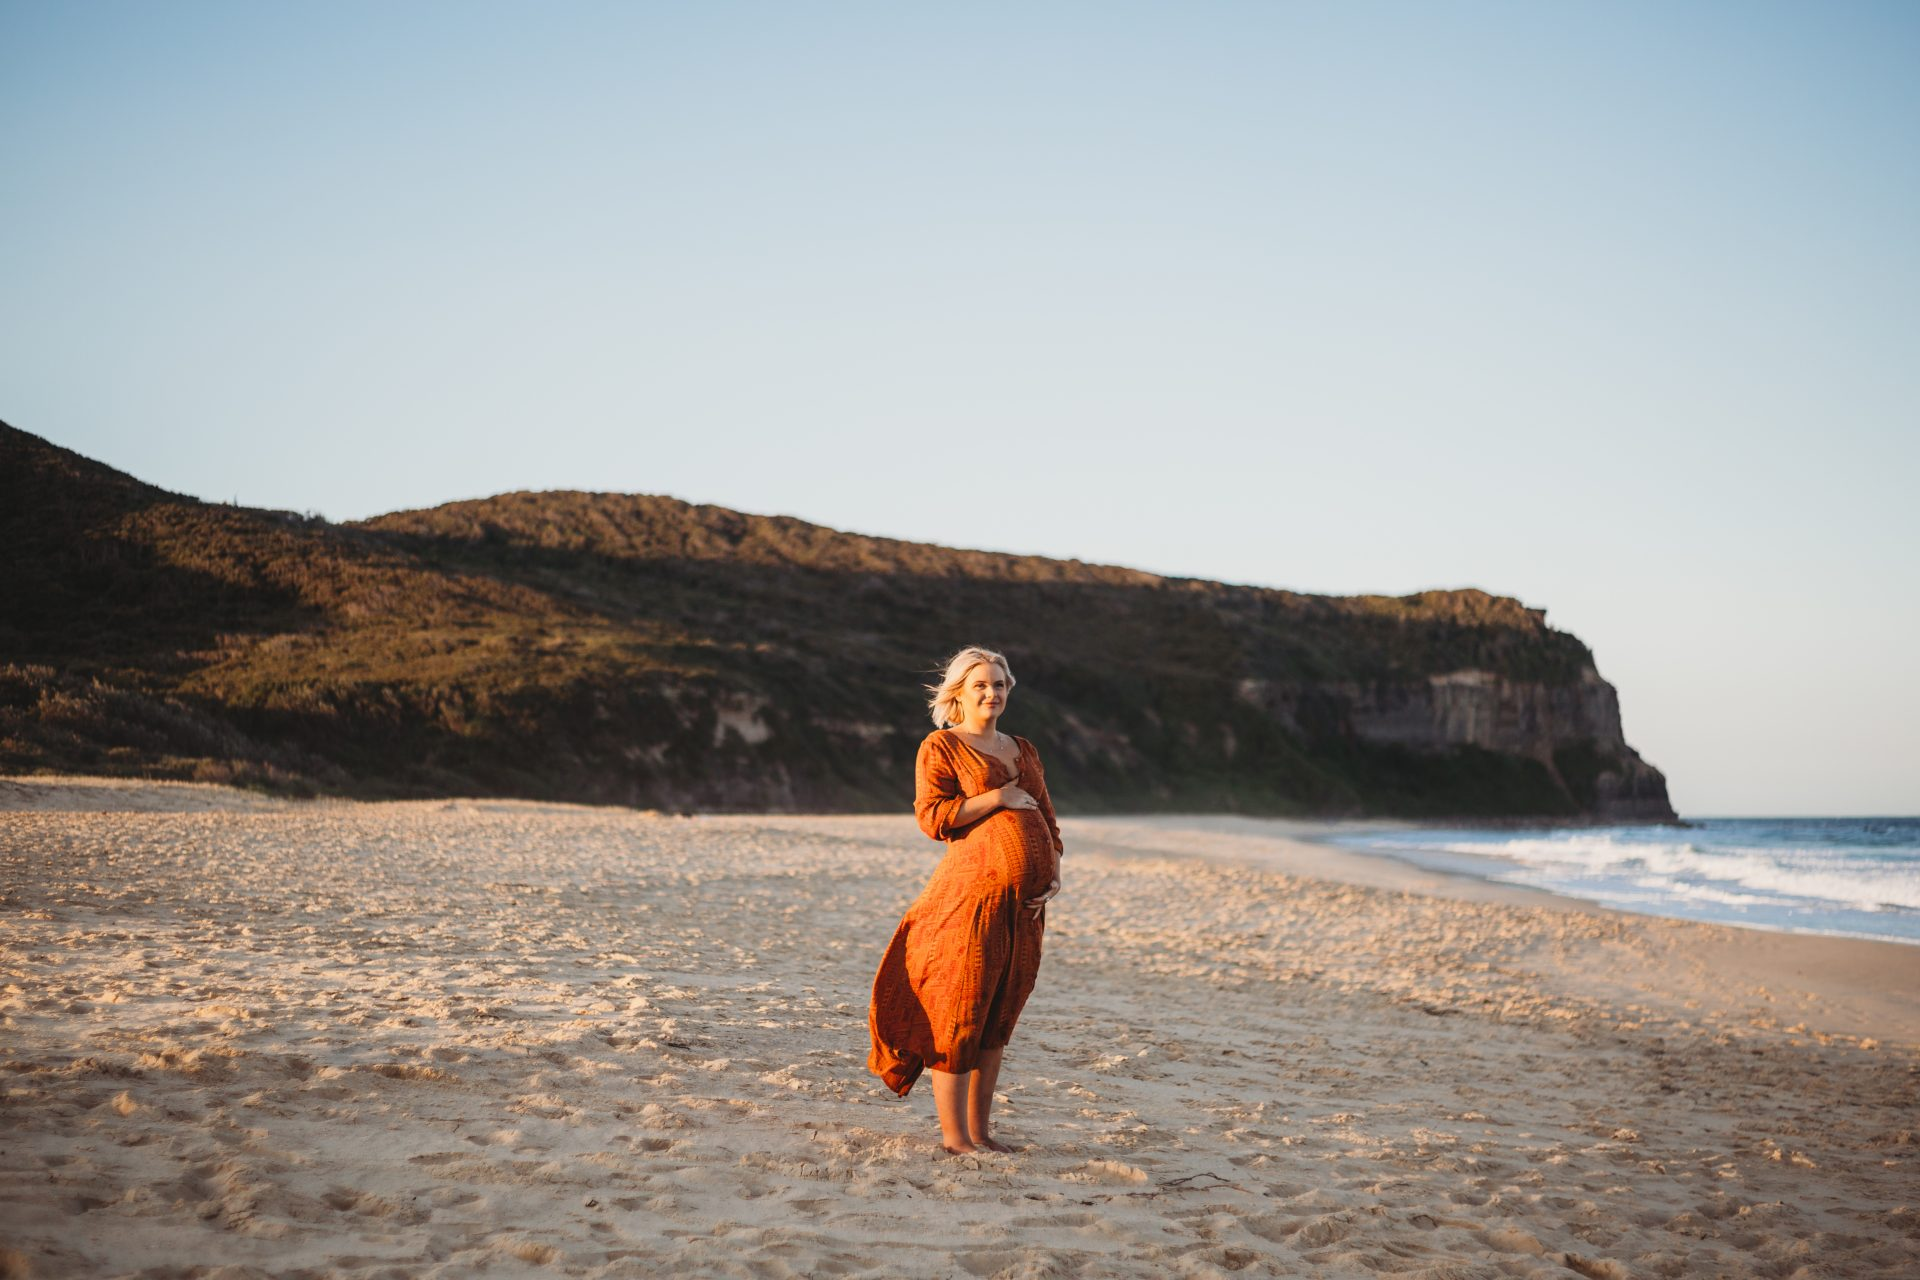 Young blonde woman smiling while holding her pregnant stomach, on Dudley Beach at sunset